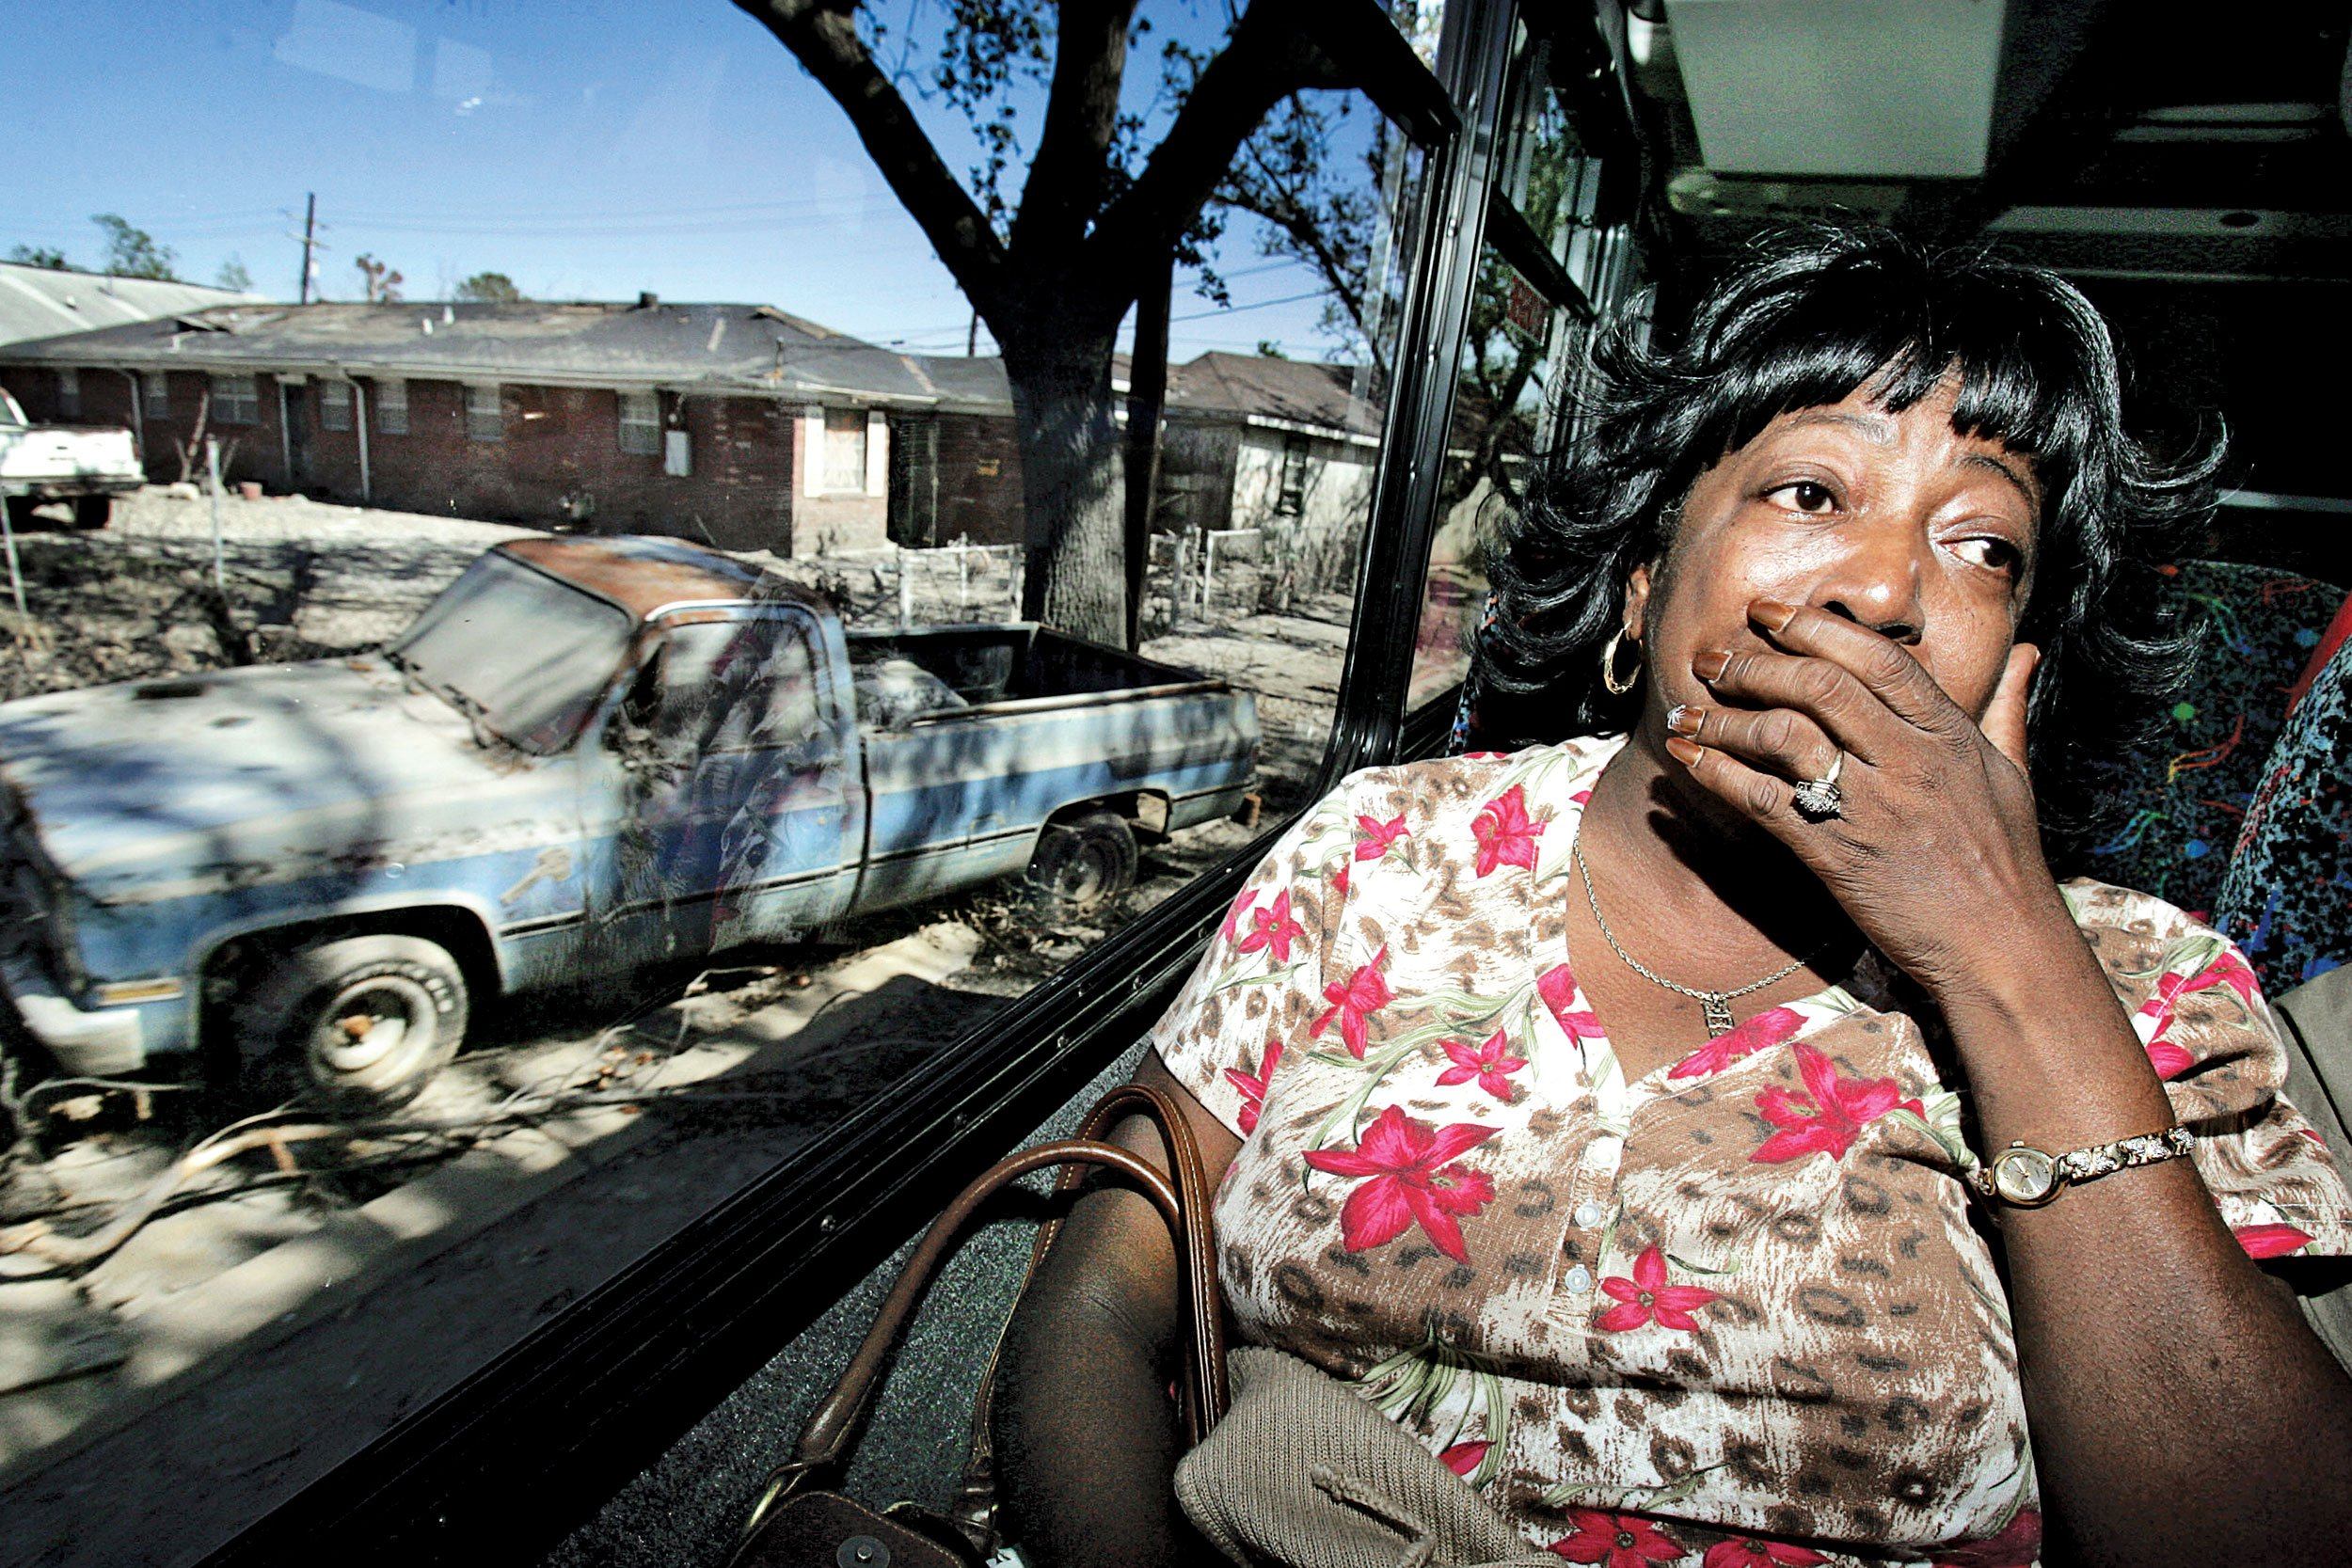 hurricane katrina a man made disaster essay Conversely, hurricane katrina along the gulf coast in 2005 resulted in one of the worst ever natural disaster in us history, and it clearly exposed.